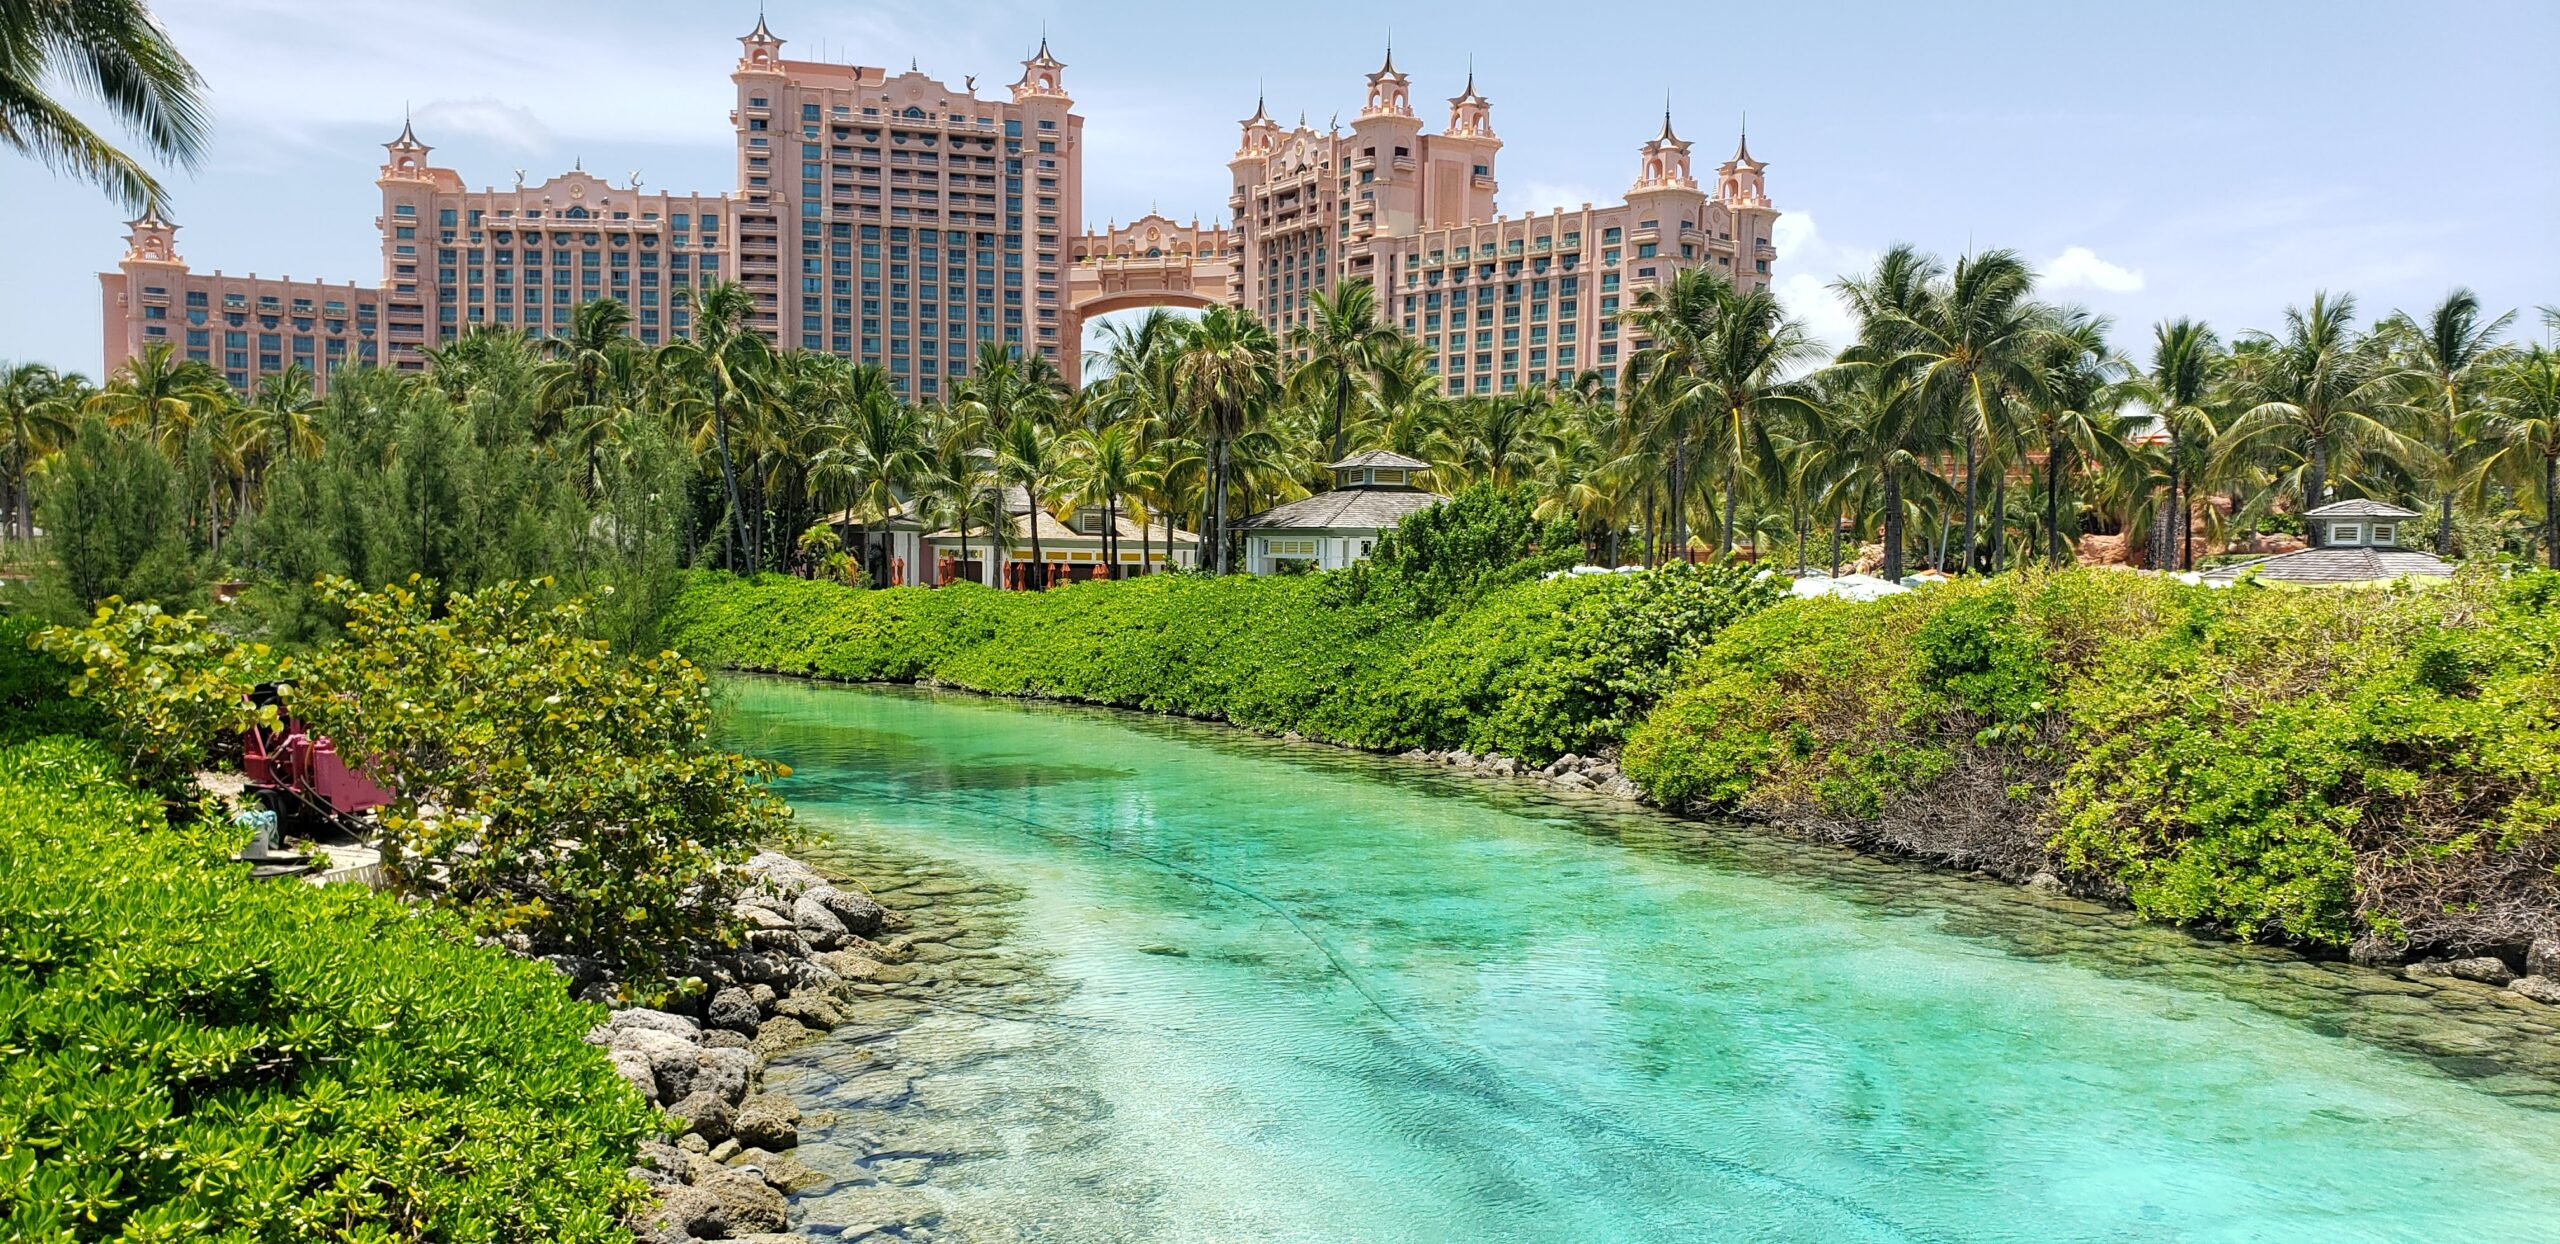 The Atlantis Resort Paradise Island is a sprawling playland featuring an aquaventure water park, marine habitat and so much fun for families